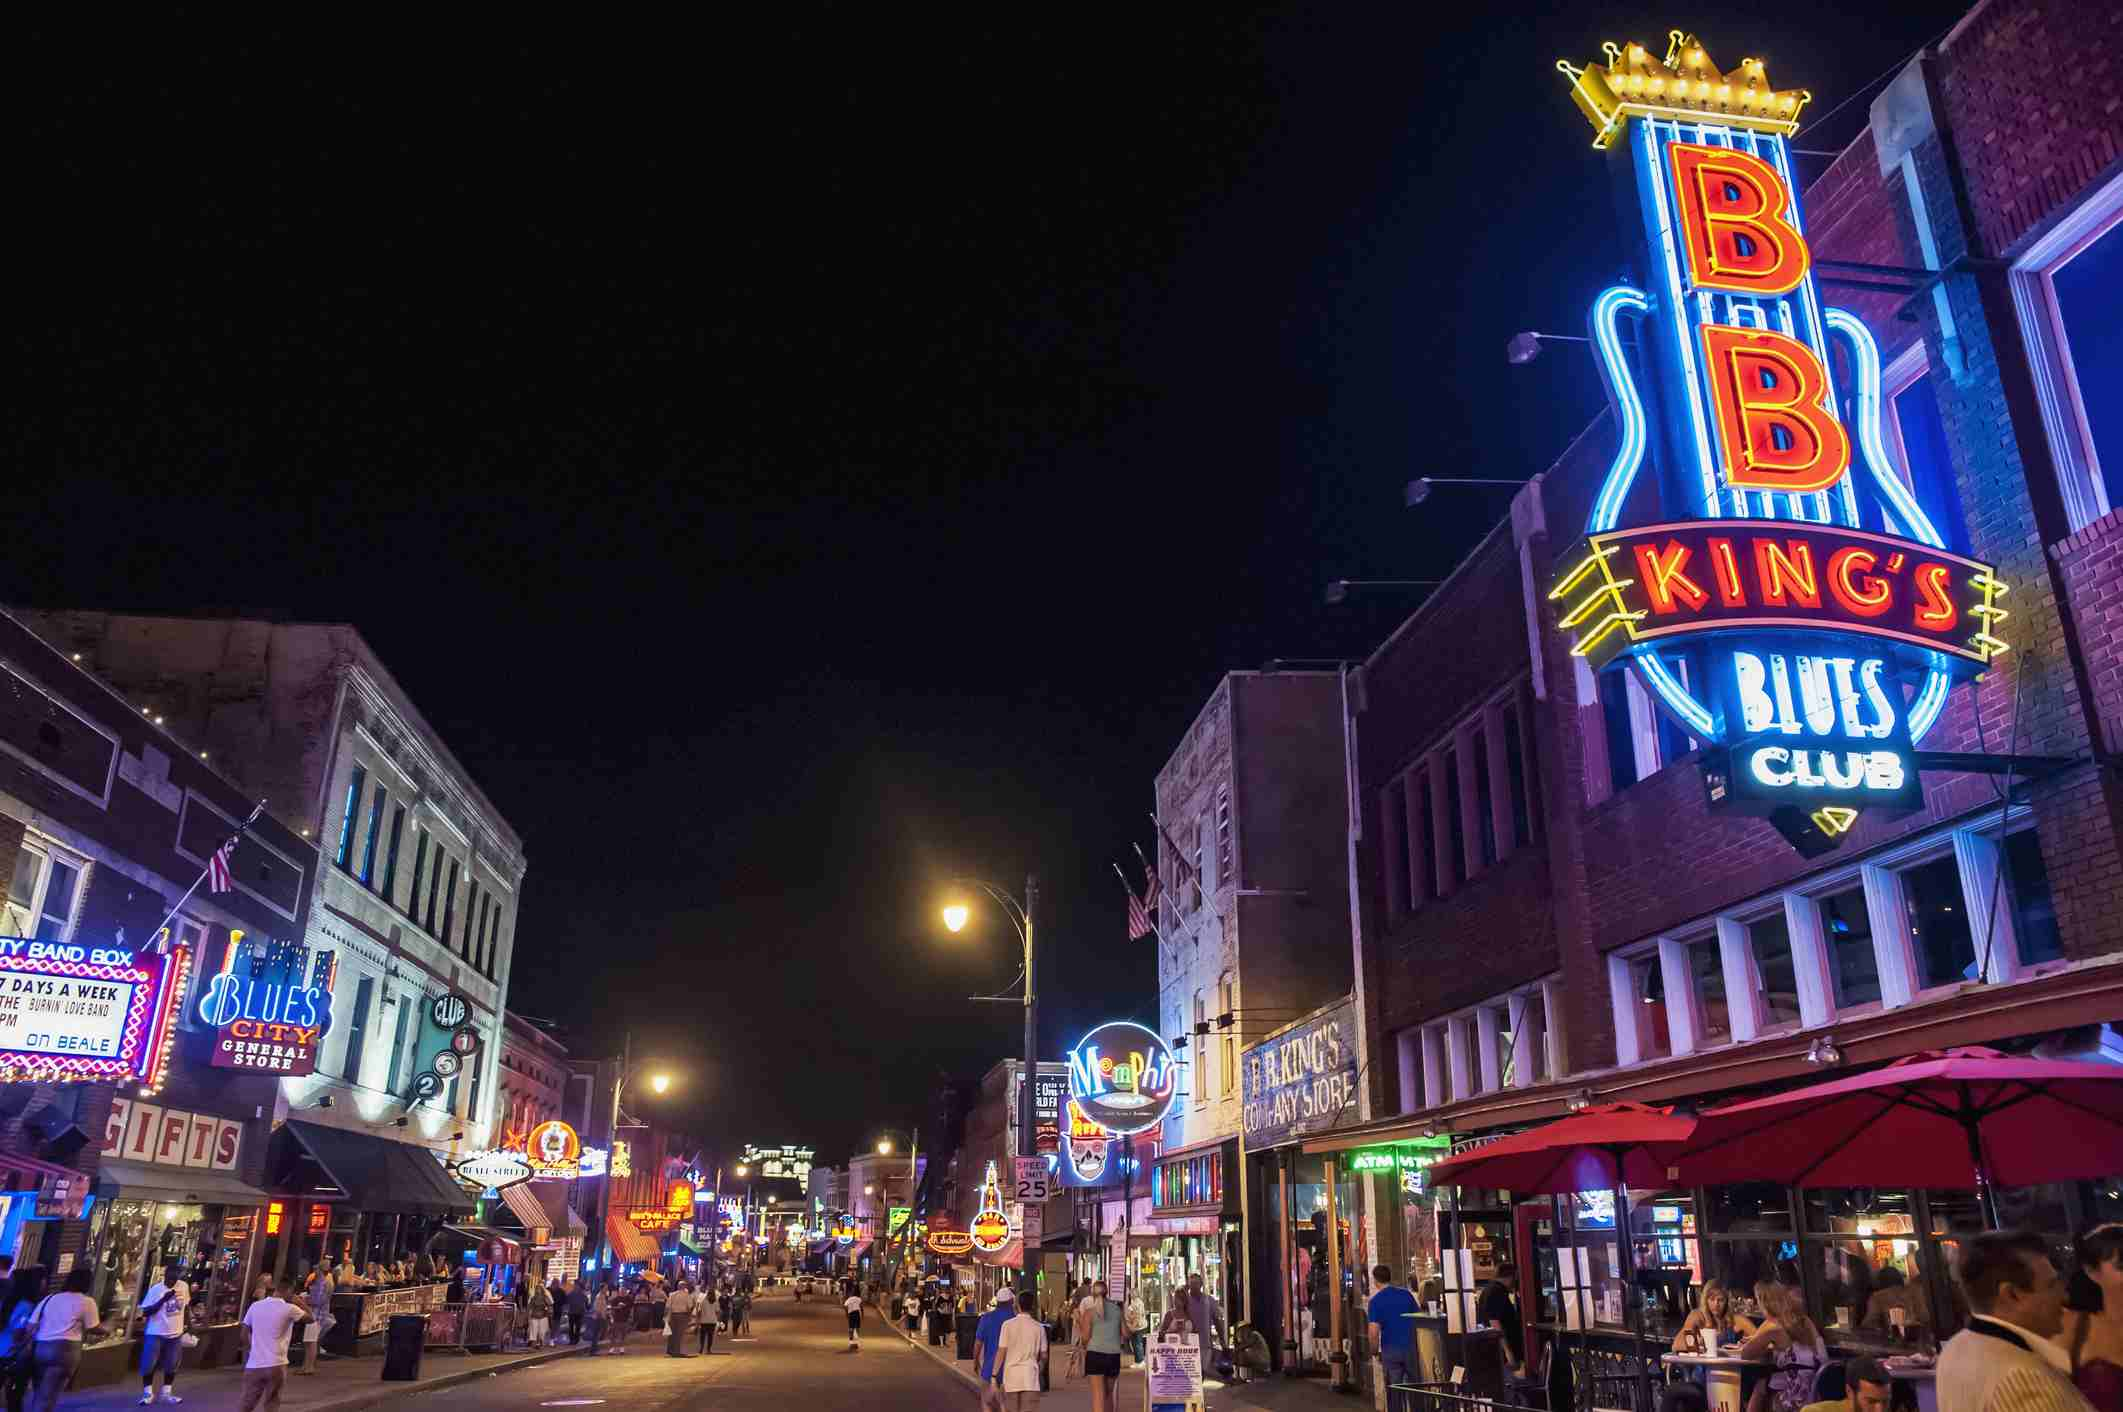 Beale Street at night in Memphis, Tennessee